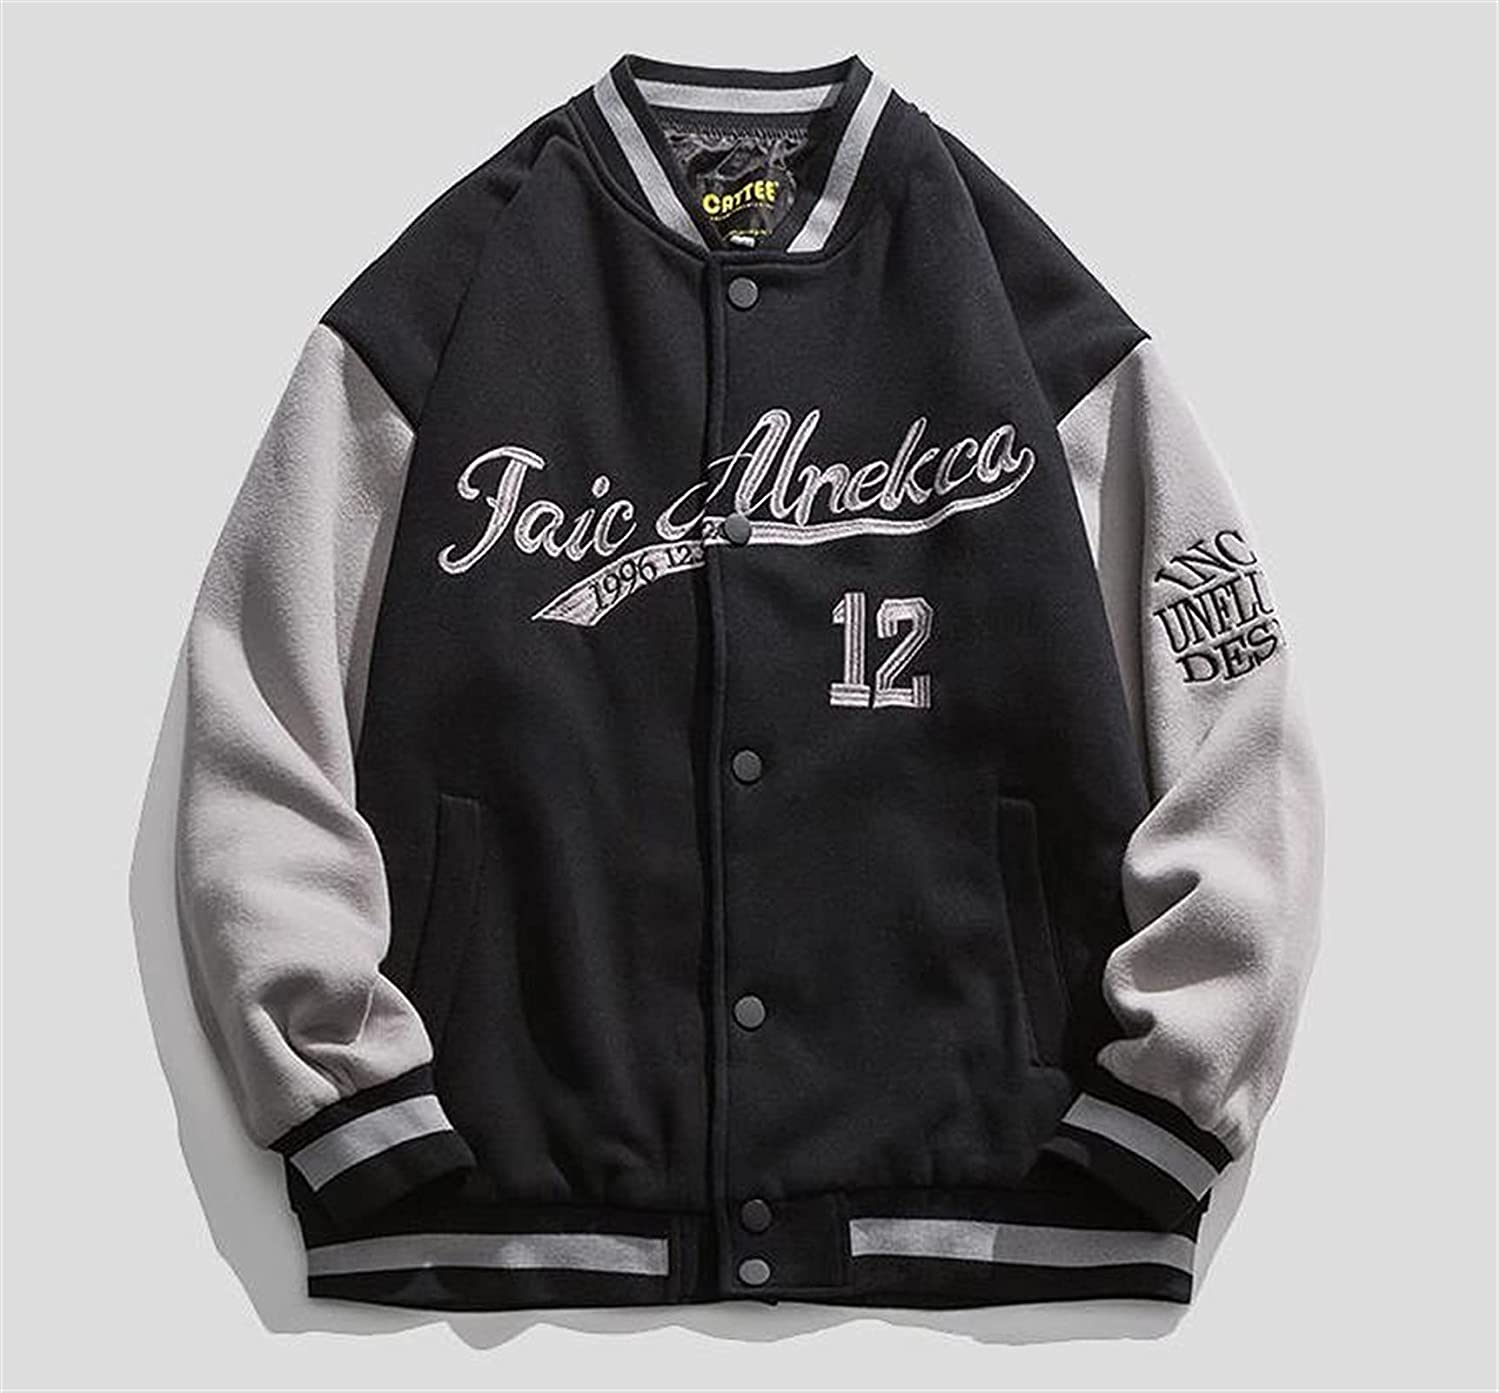 without logo 2021 New Hip-hop Baseball Jacket Big Letters Embroidery Patchwork Streetwear College Rock Jacket Fashion (Color : Blcak, Size : XX-Large)